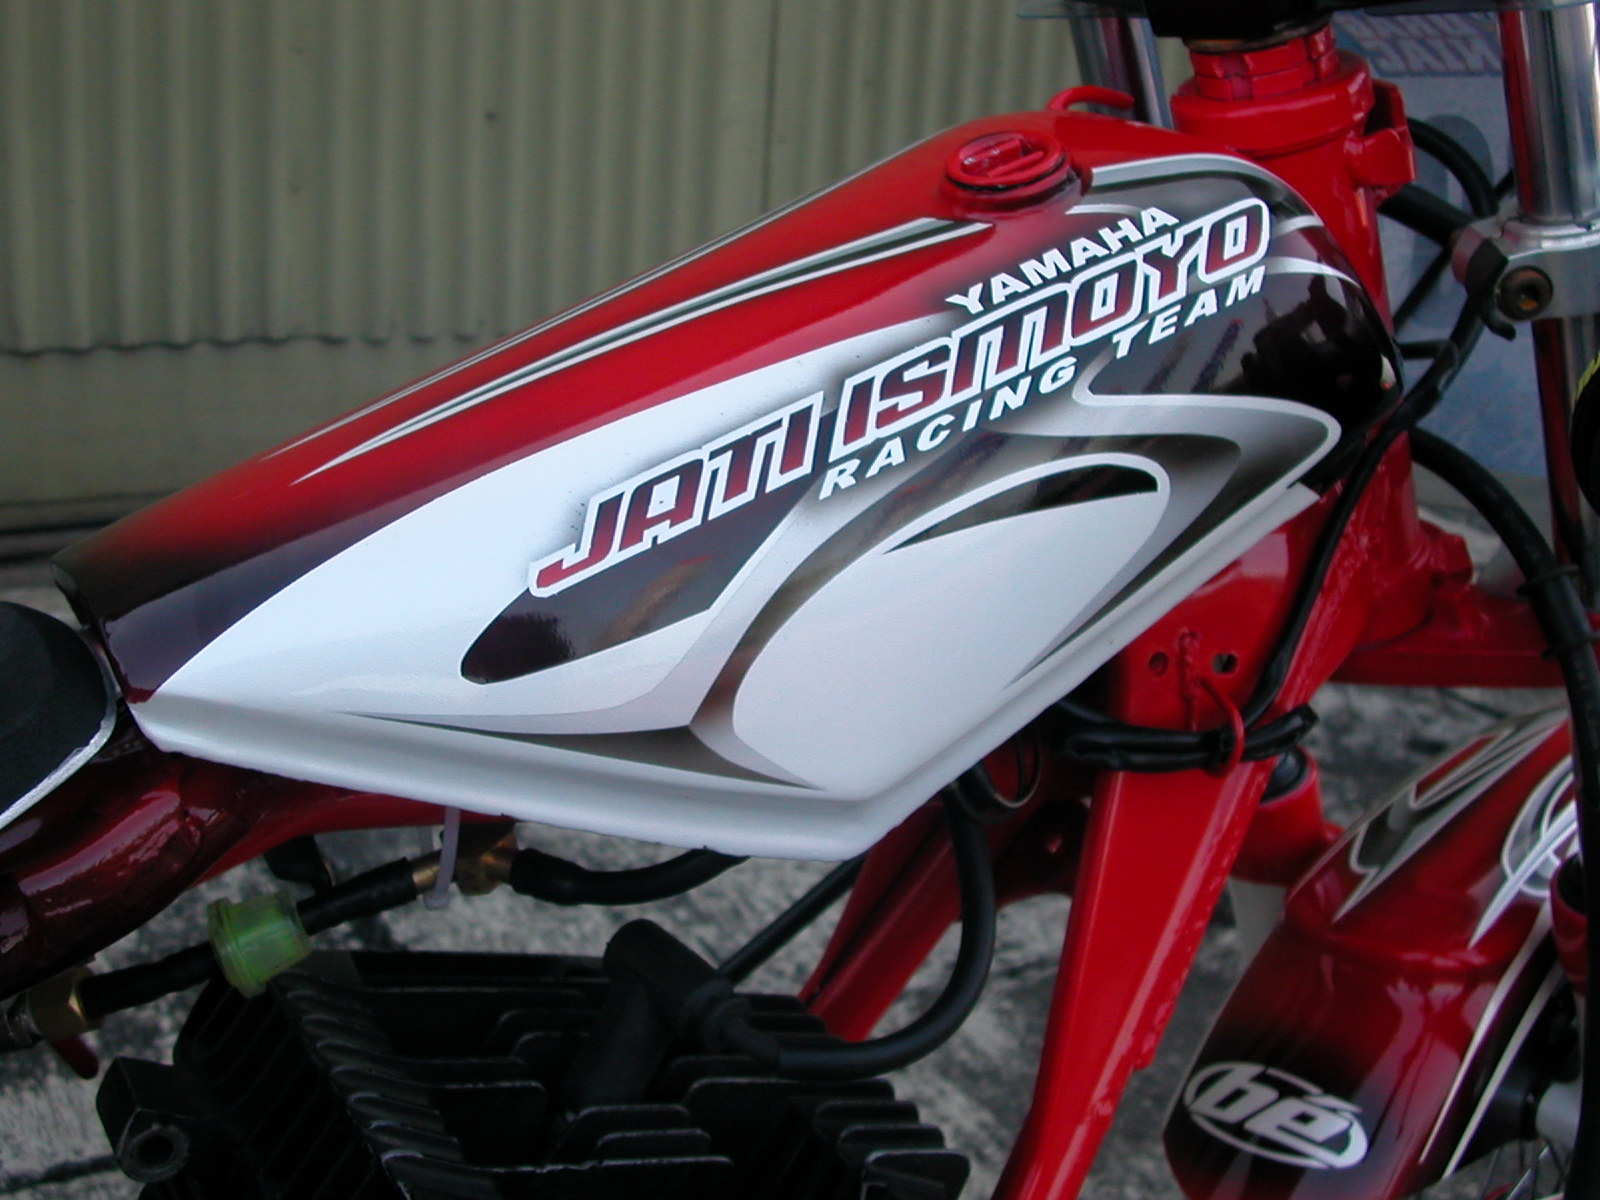 Image of Motor Modifikasi Airbrush